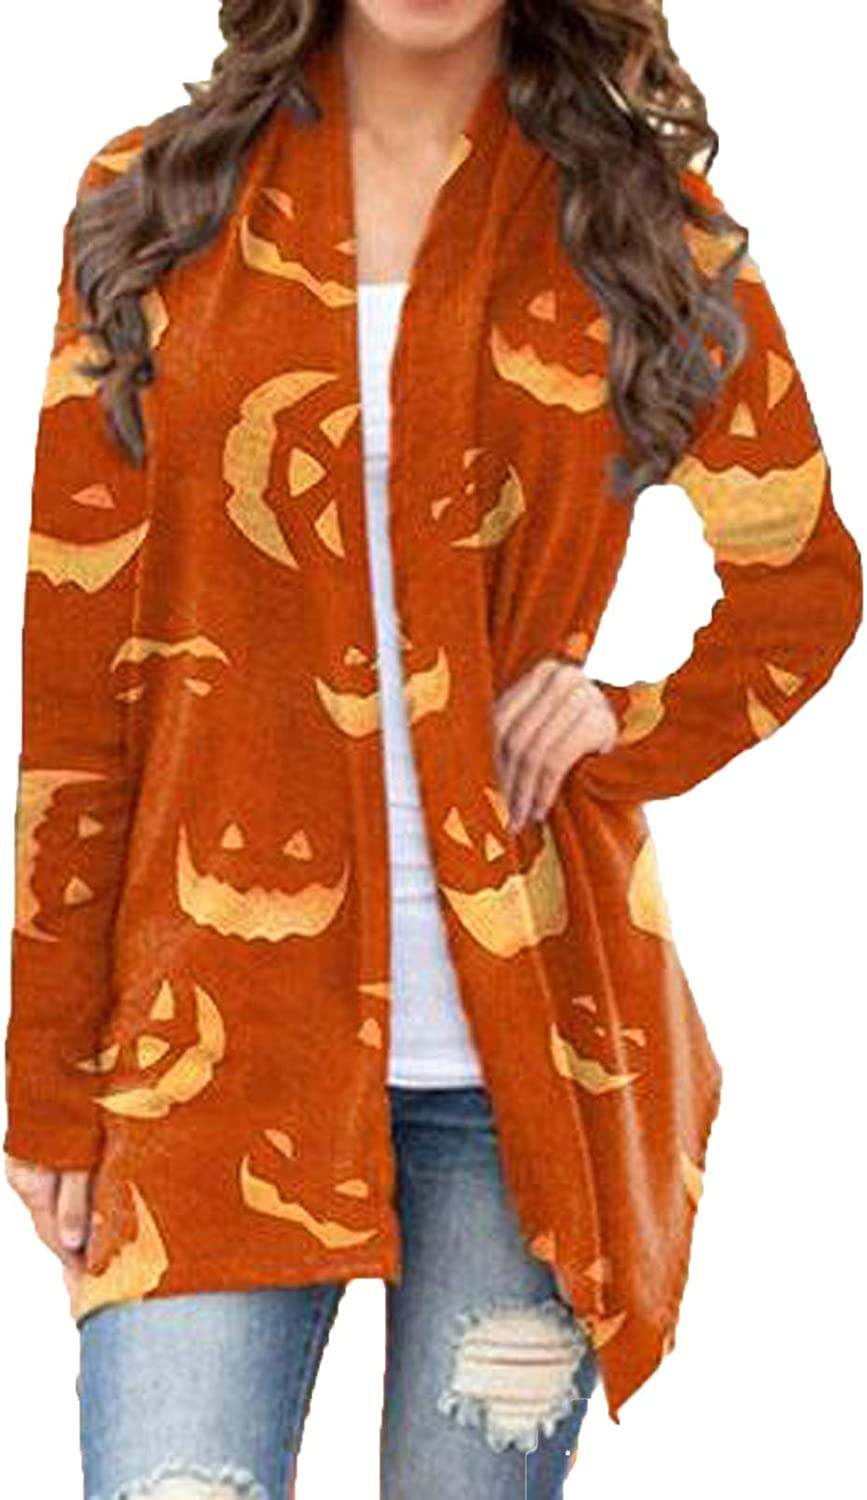 Jaqqra Womens Halloween Long Sleeve Open Front Cardigan Slouchy Cute Spider Web Ghost Print Tops Lightweight Coat